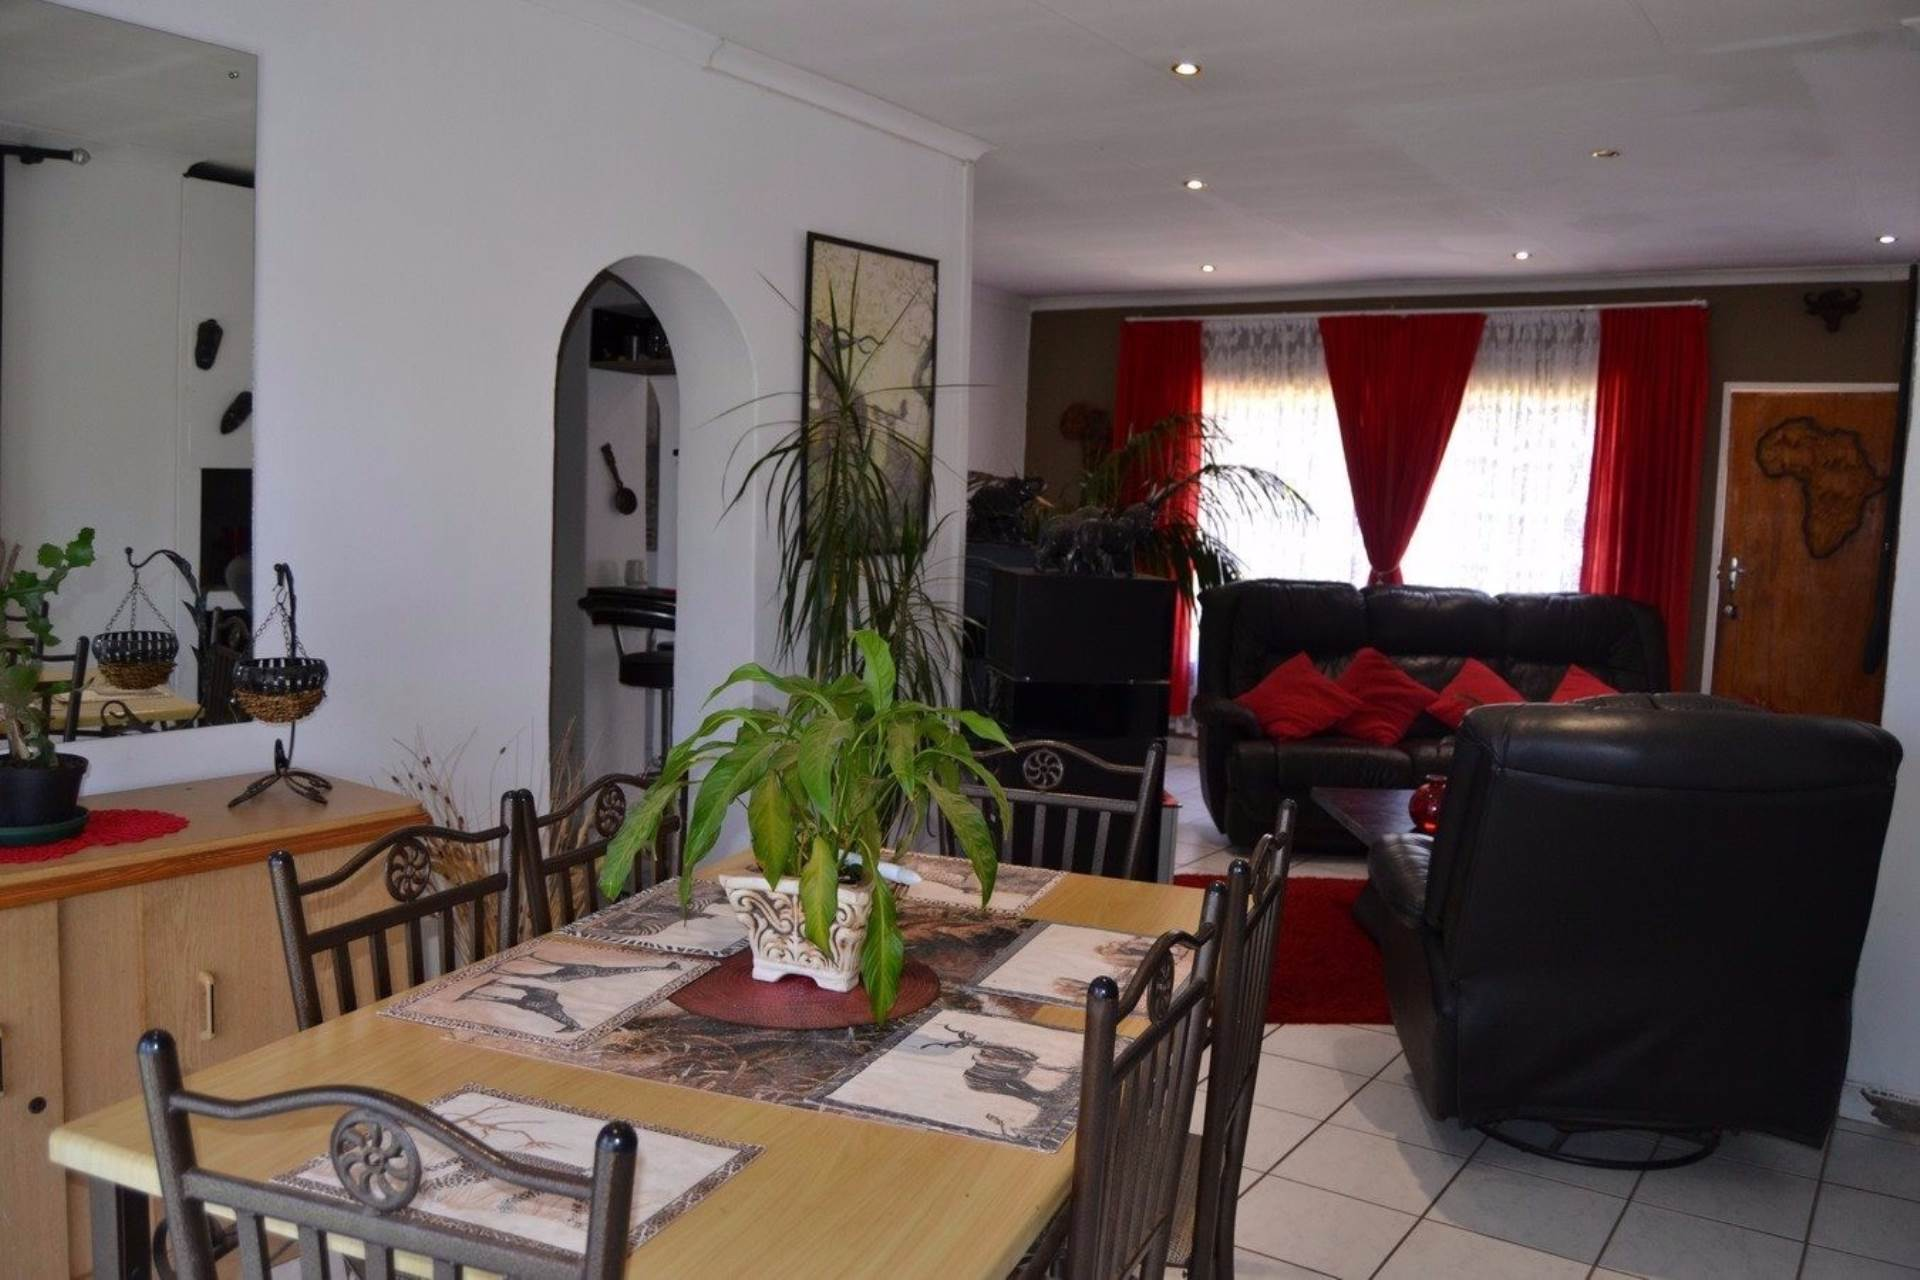 House For Sale In Witpoortjie Roodepoort Gauteng For R